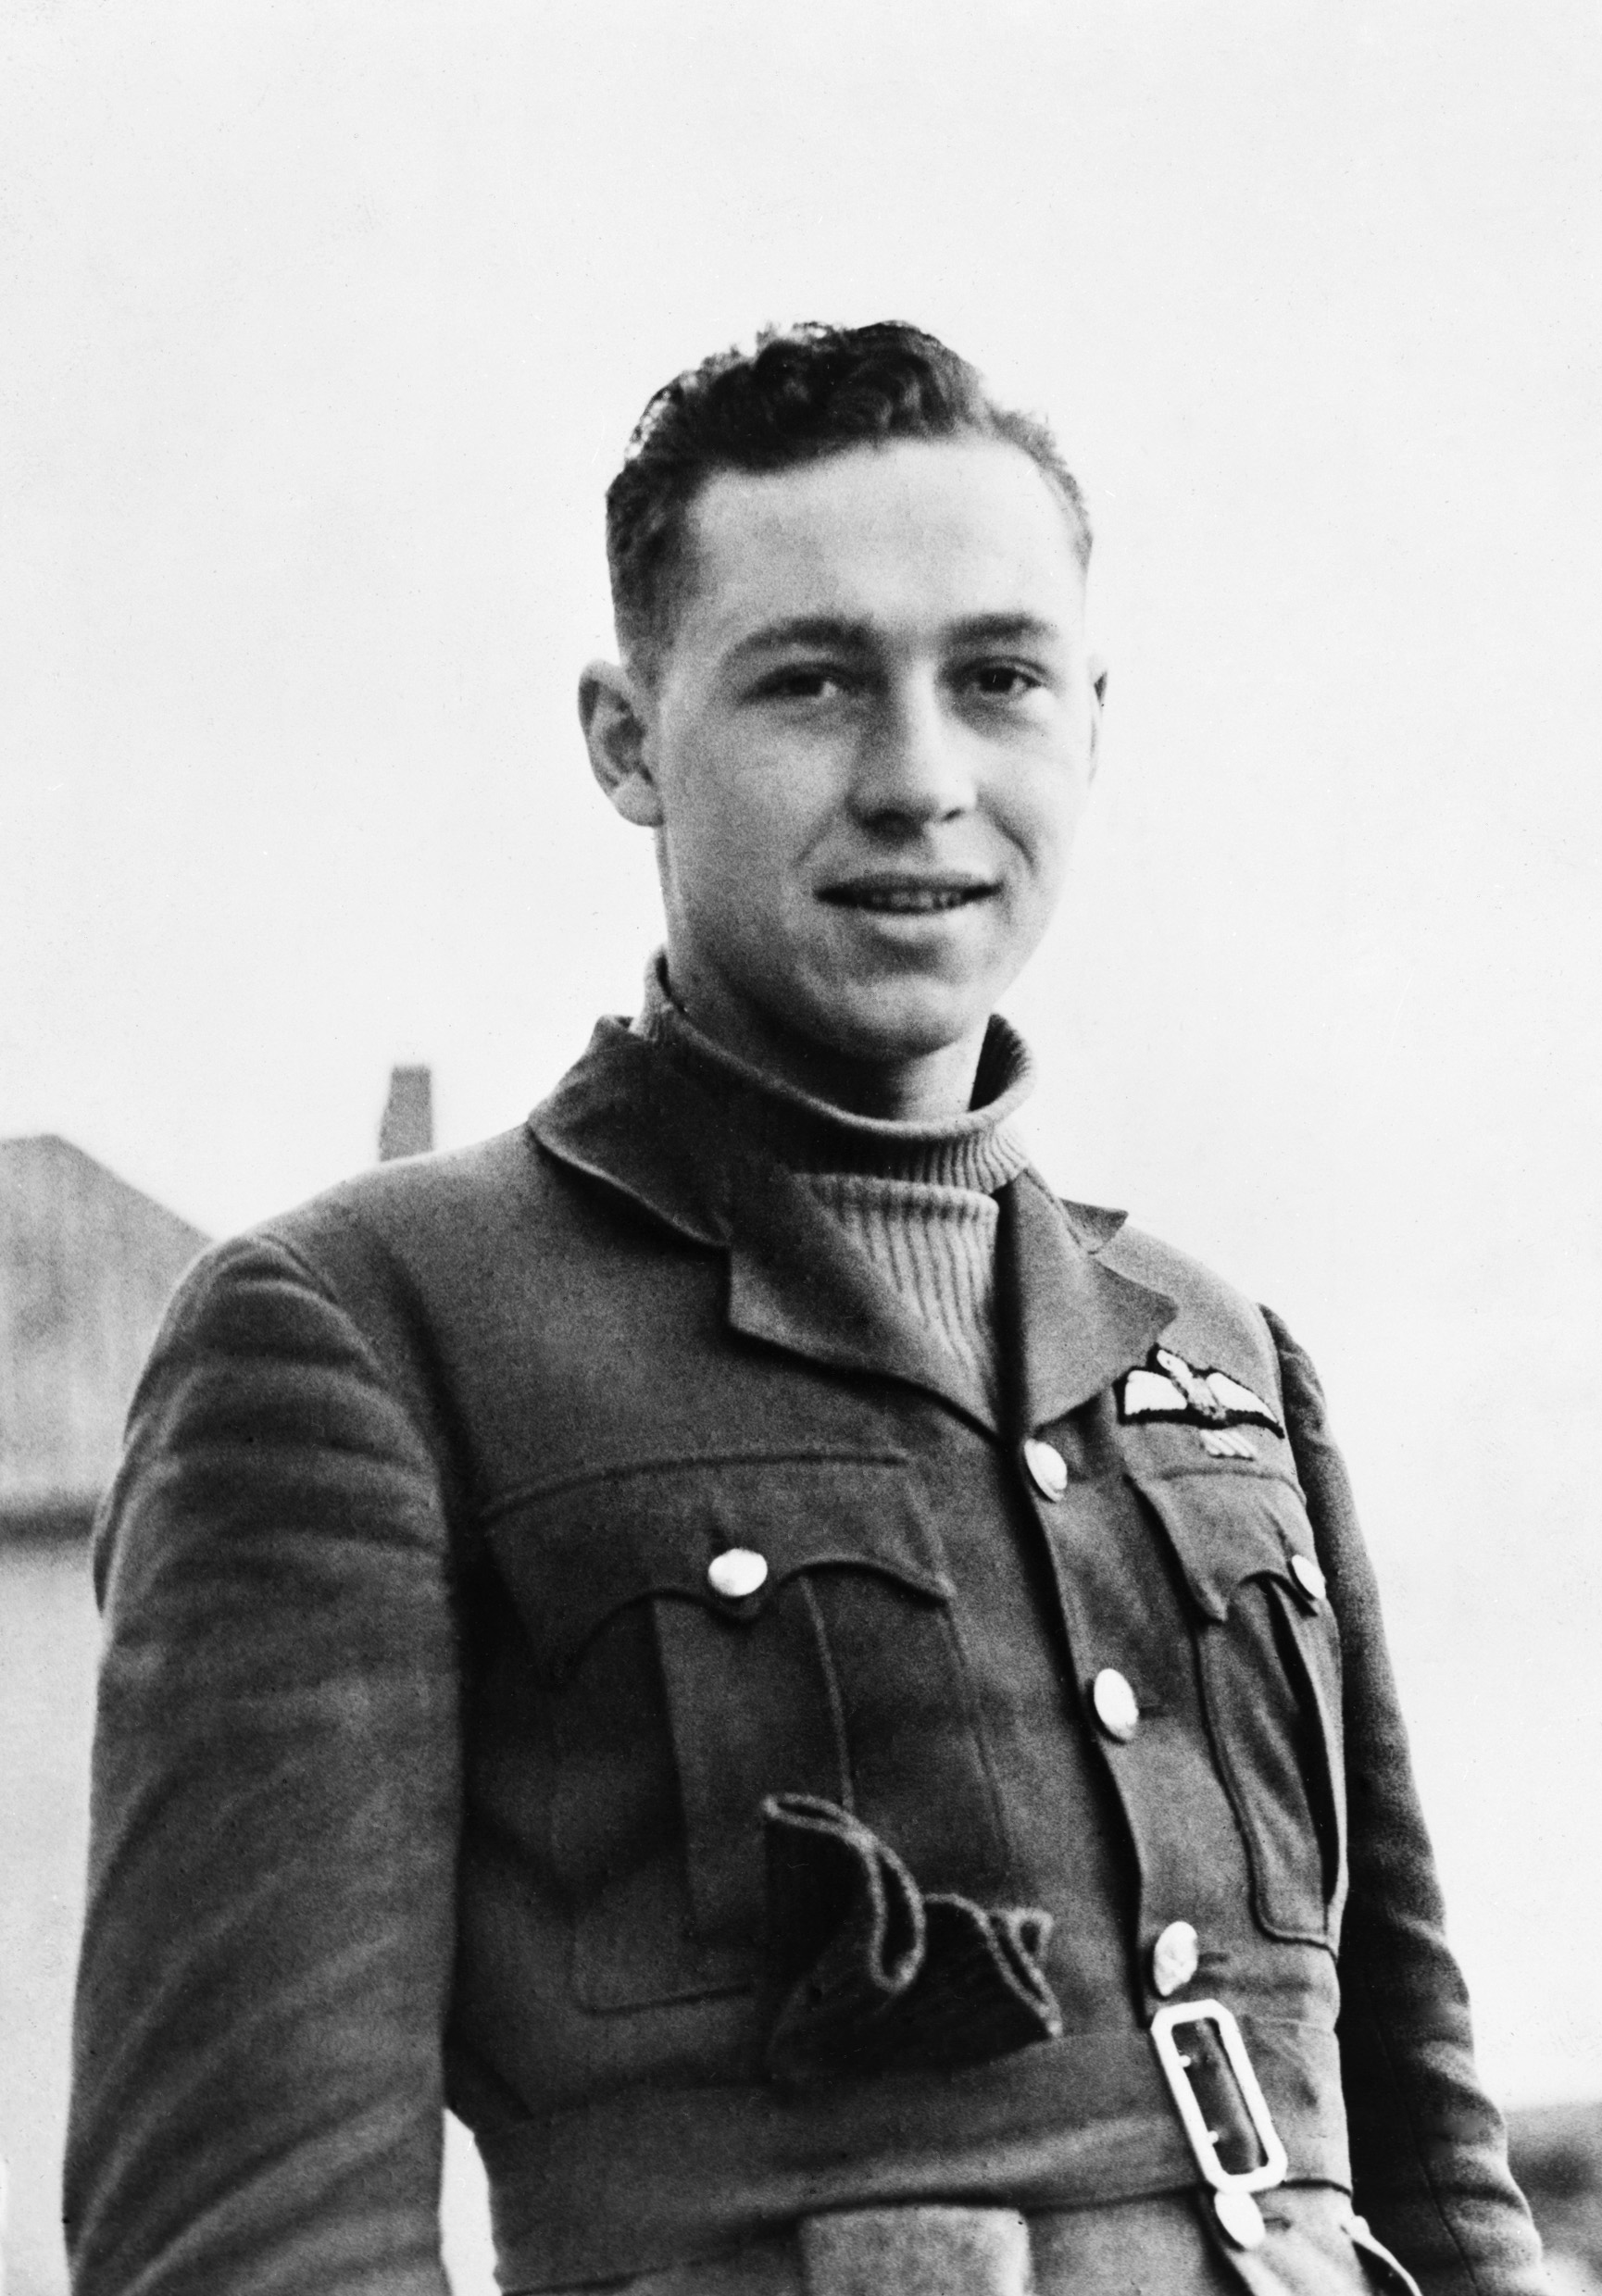 Le sous-lieutenant d'aviation William Lidstone McKnight. PHOTO : © Imperial War Museum, CH 1321